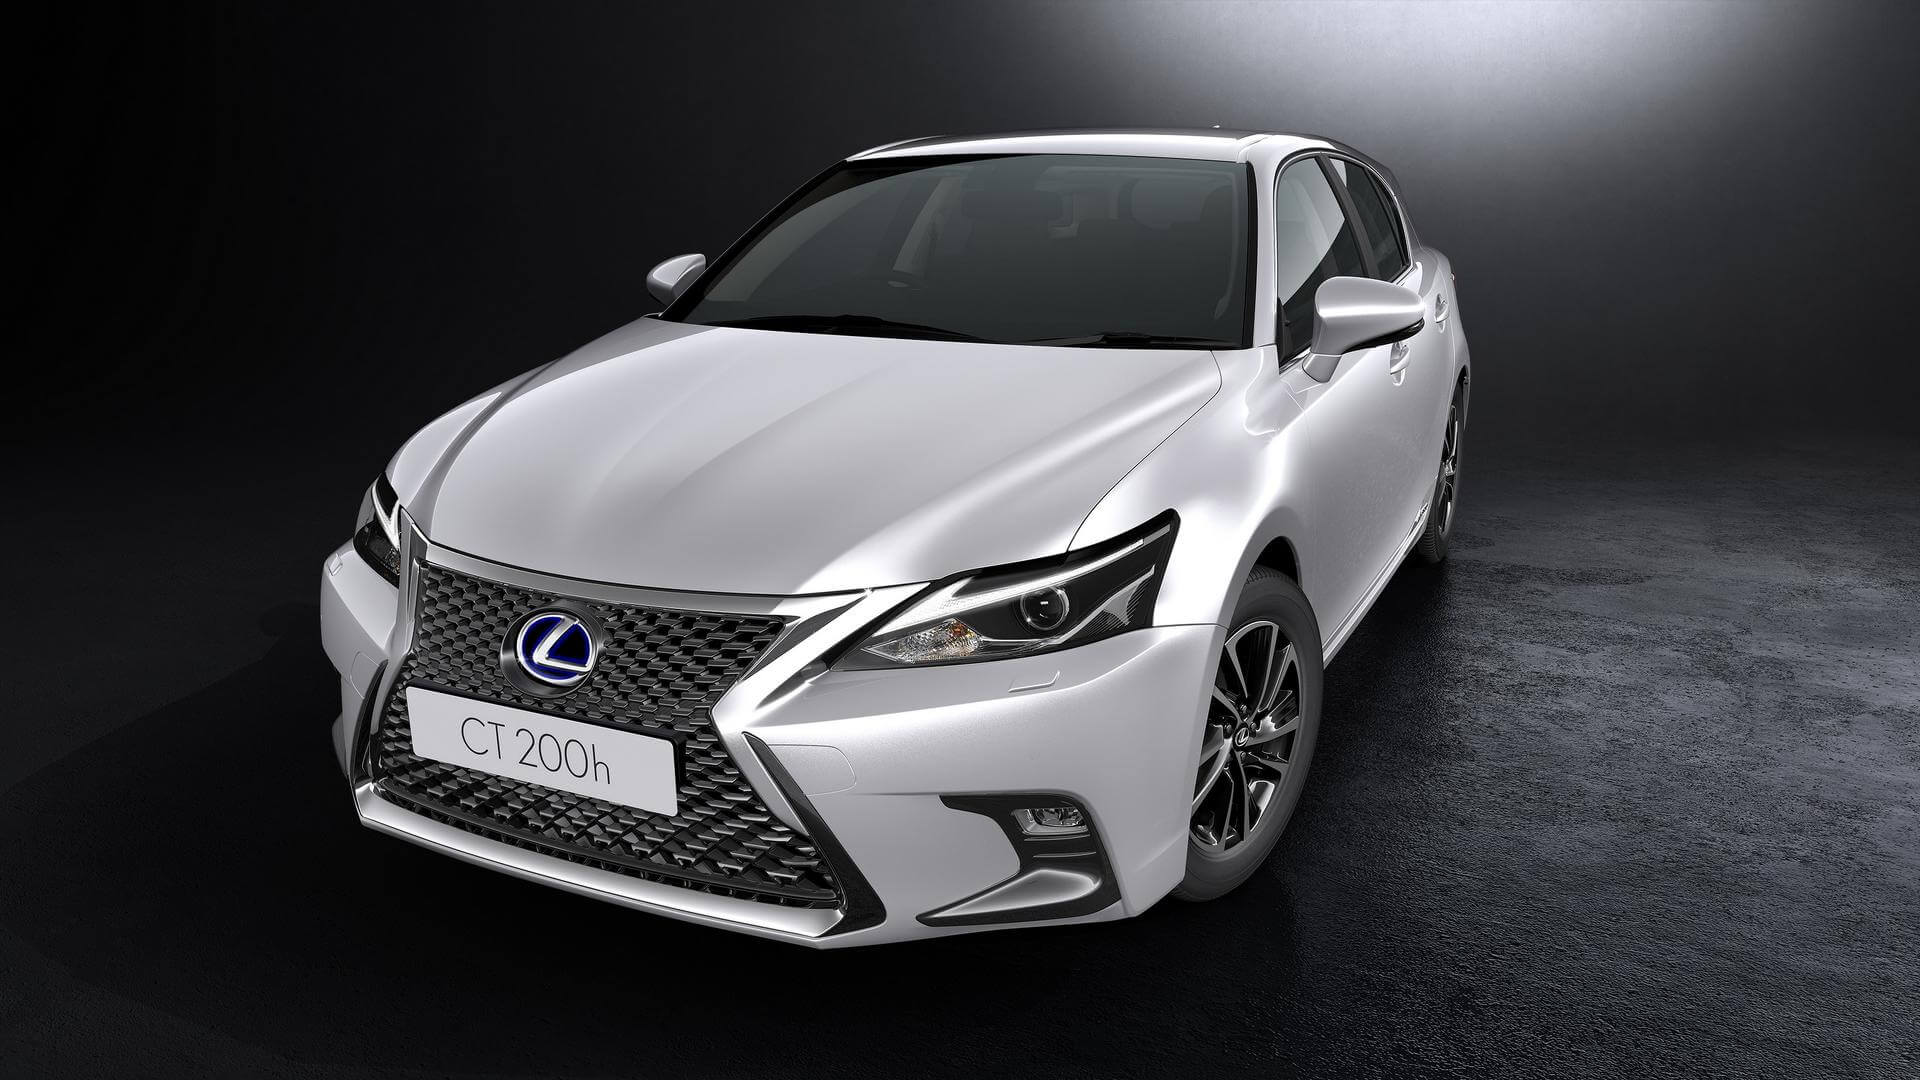 19 The Best 2020 Lexus CT 200h Release Date and Concept